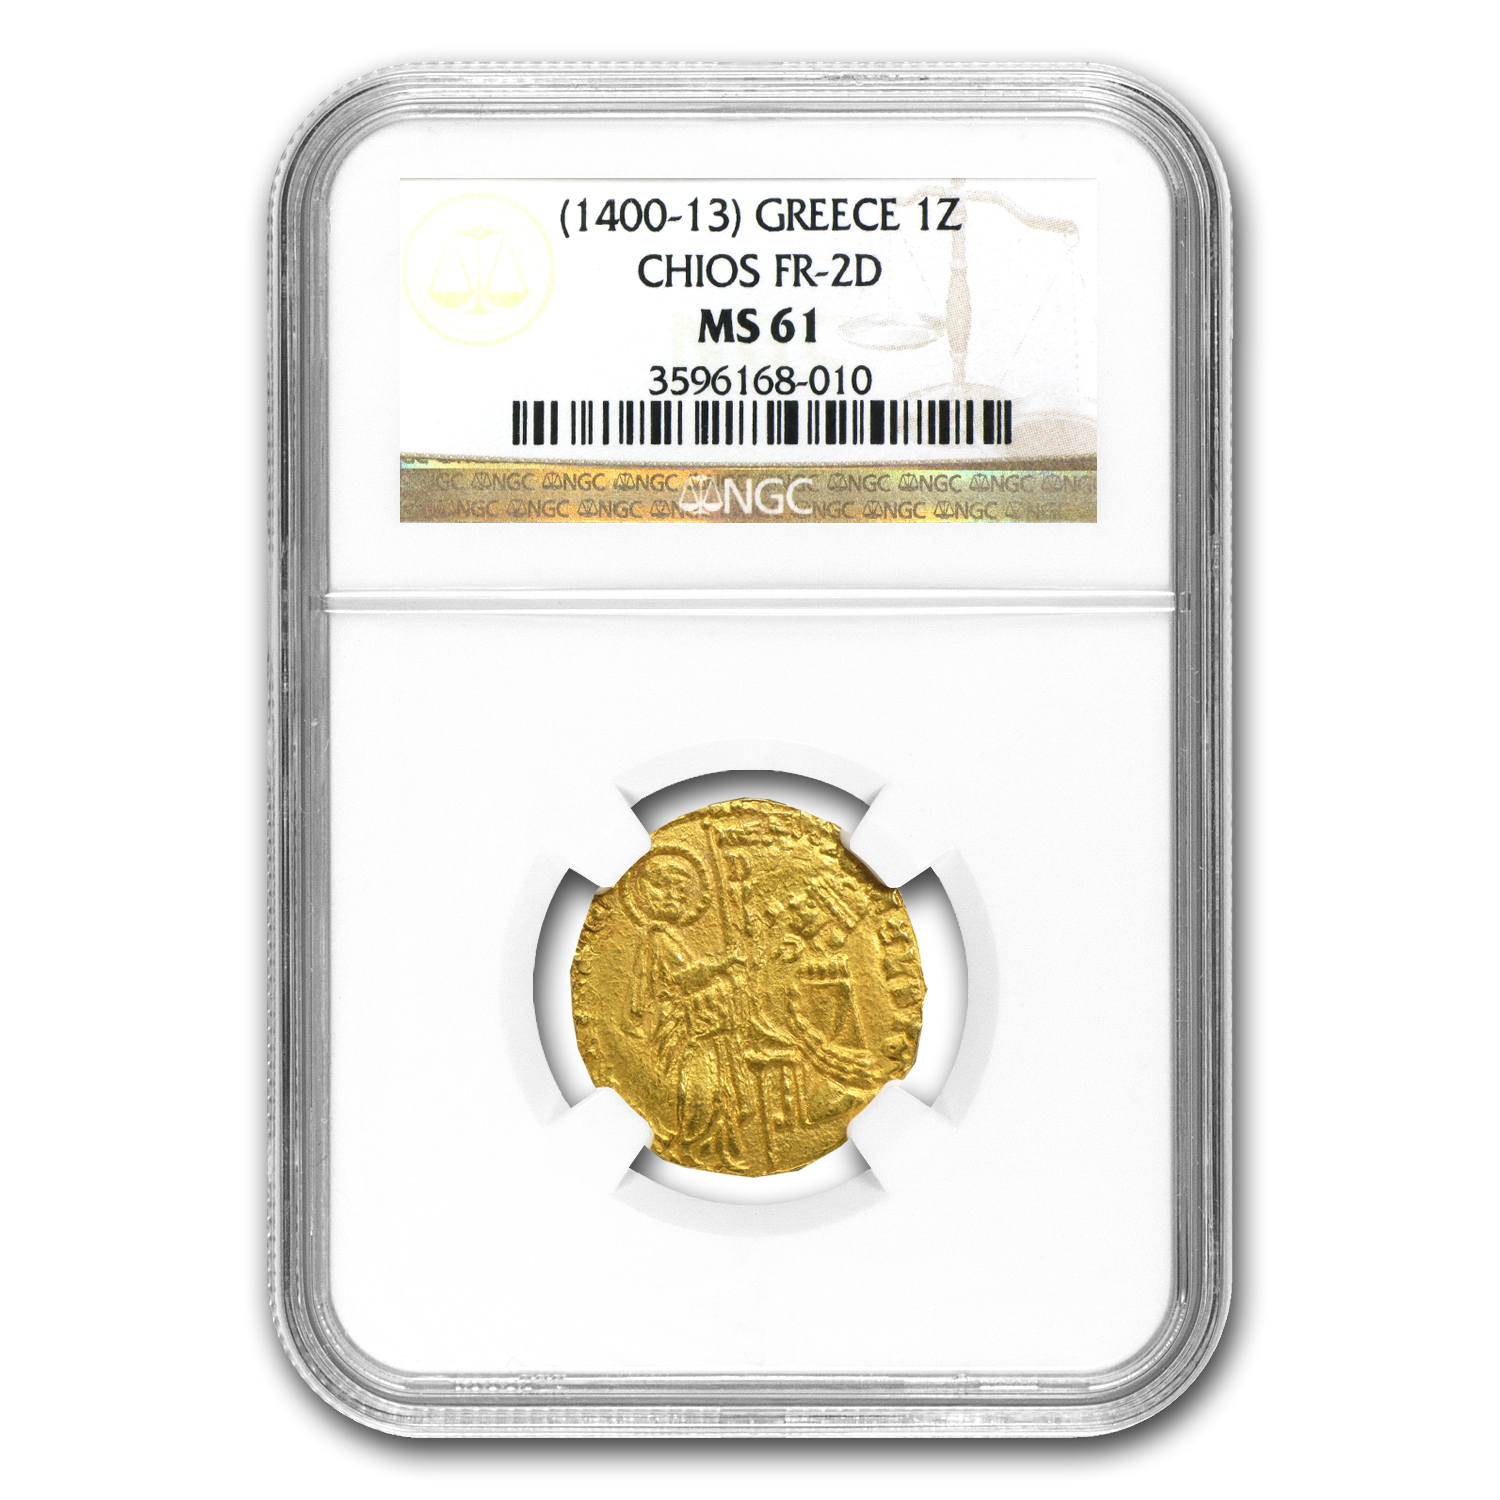 Greece Chios Gold Zecchino MS-61 NGC (1400-1413 AD)